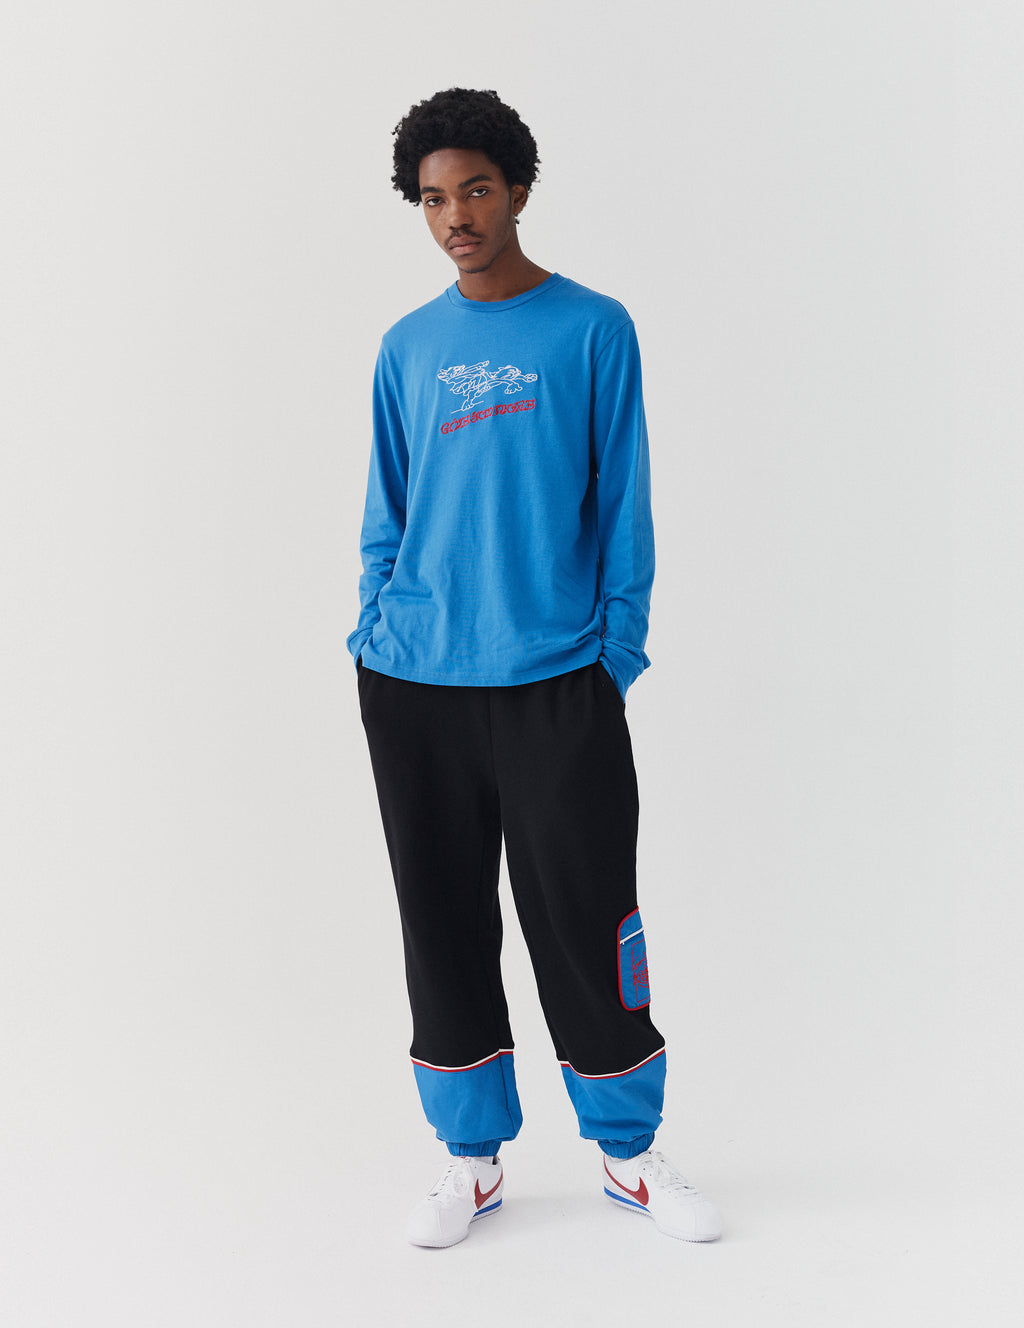 Lazy Oaf x Ellie Andrews Long Sleeve T-shirt